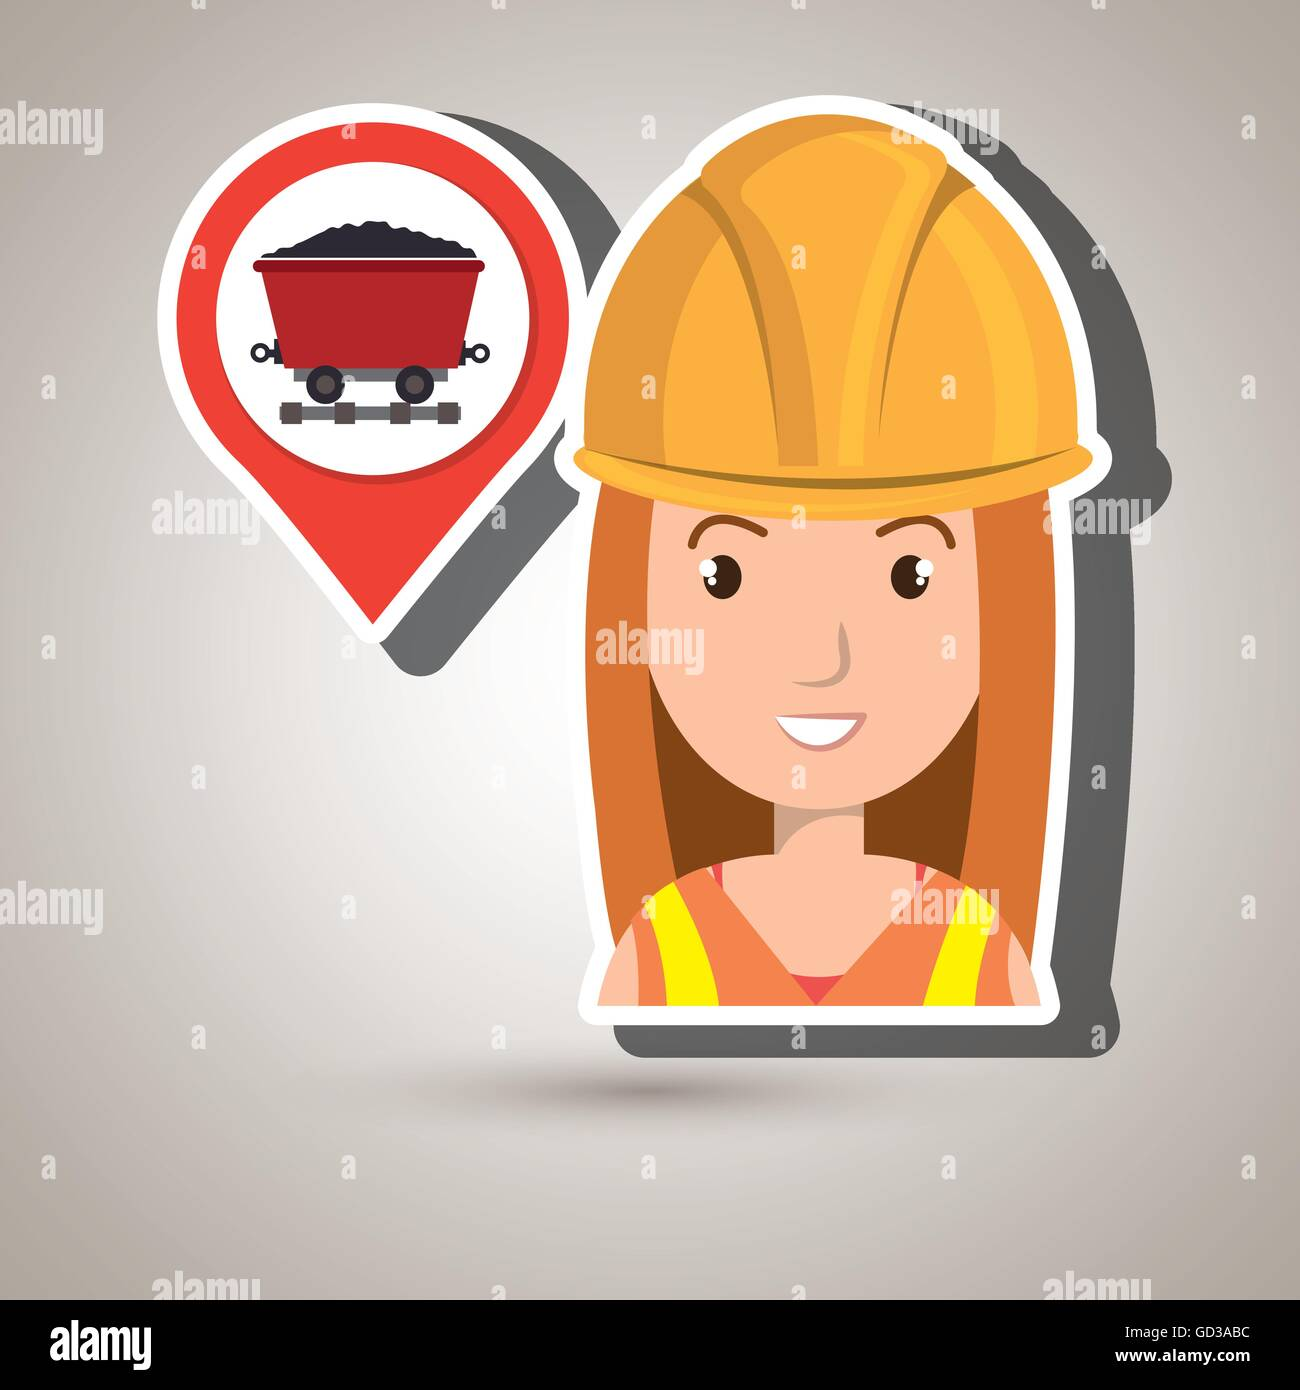 woman and mining isolated icon design - Stock Image